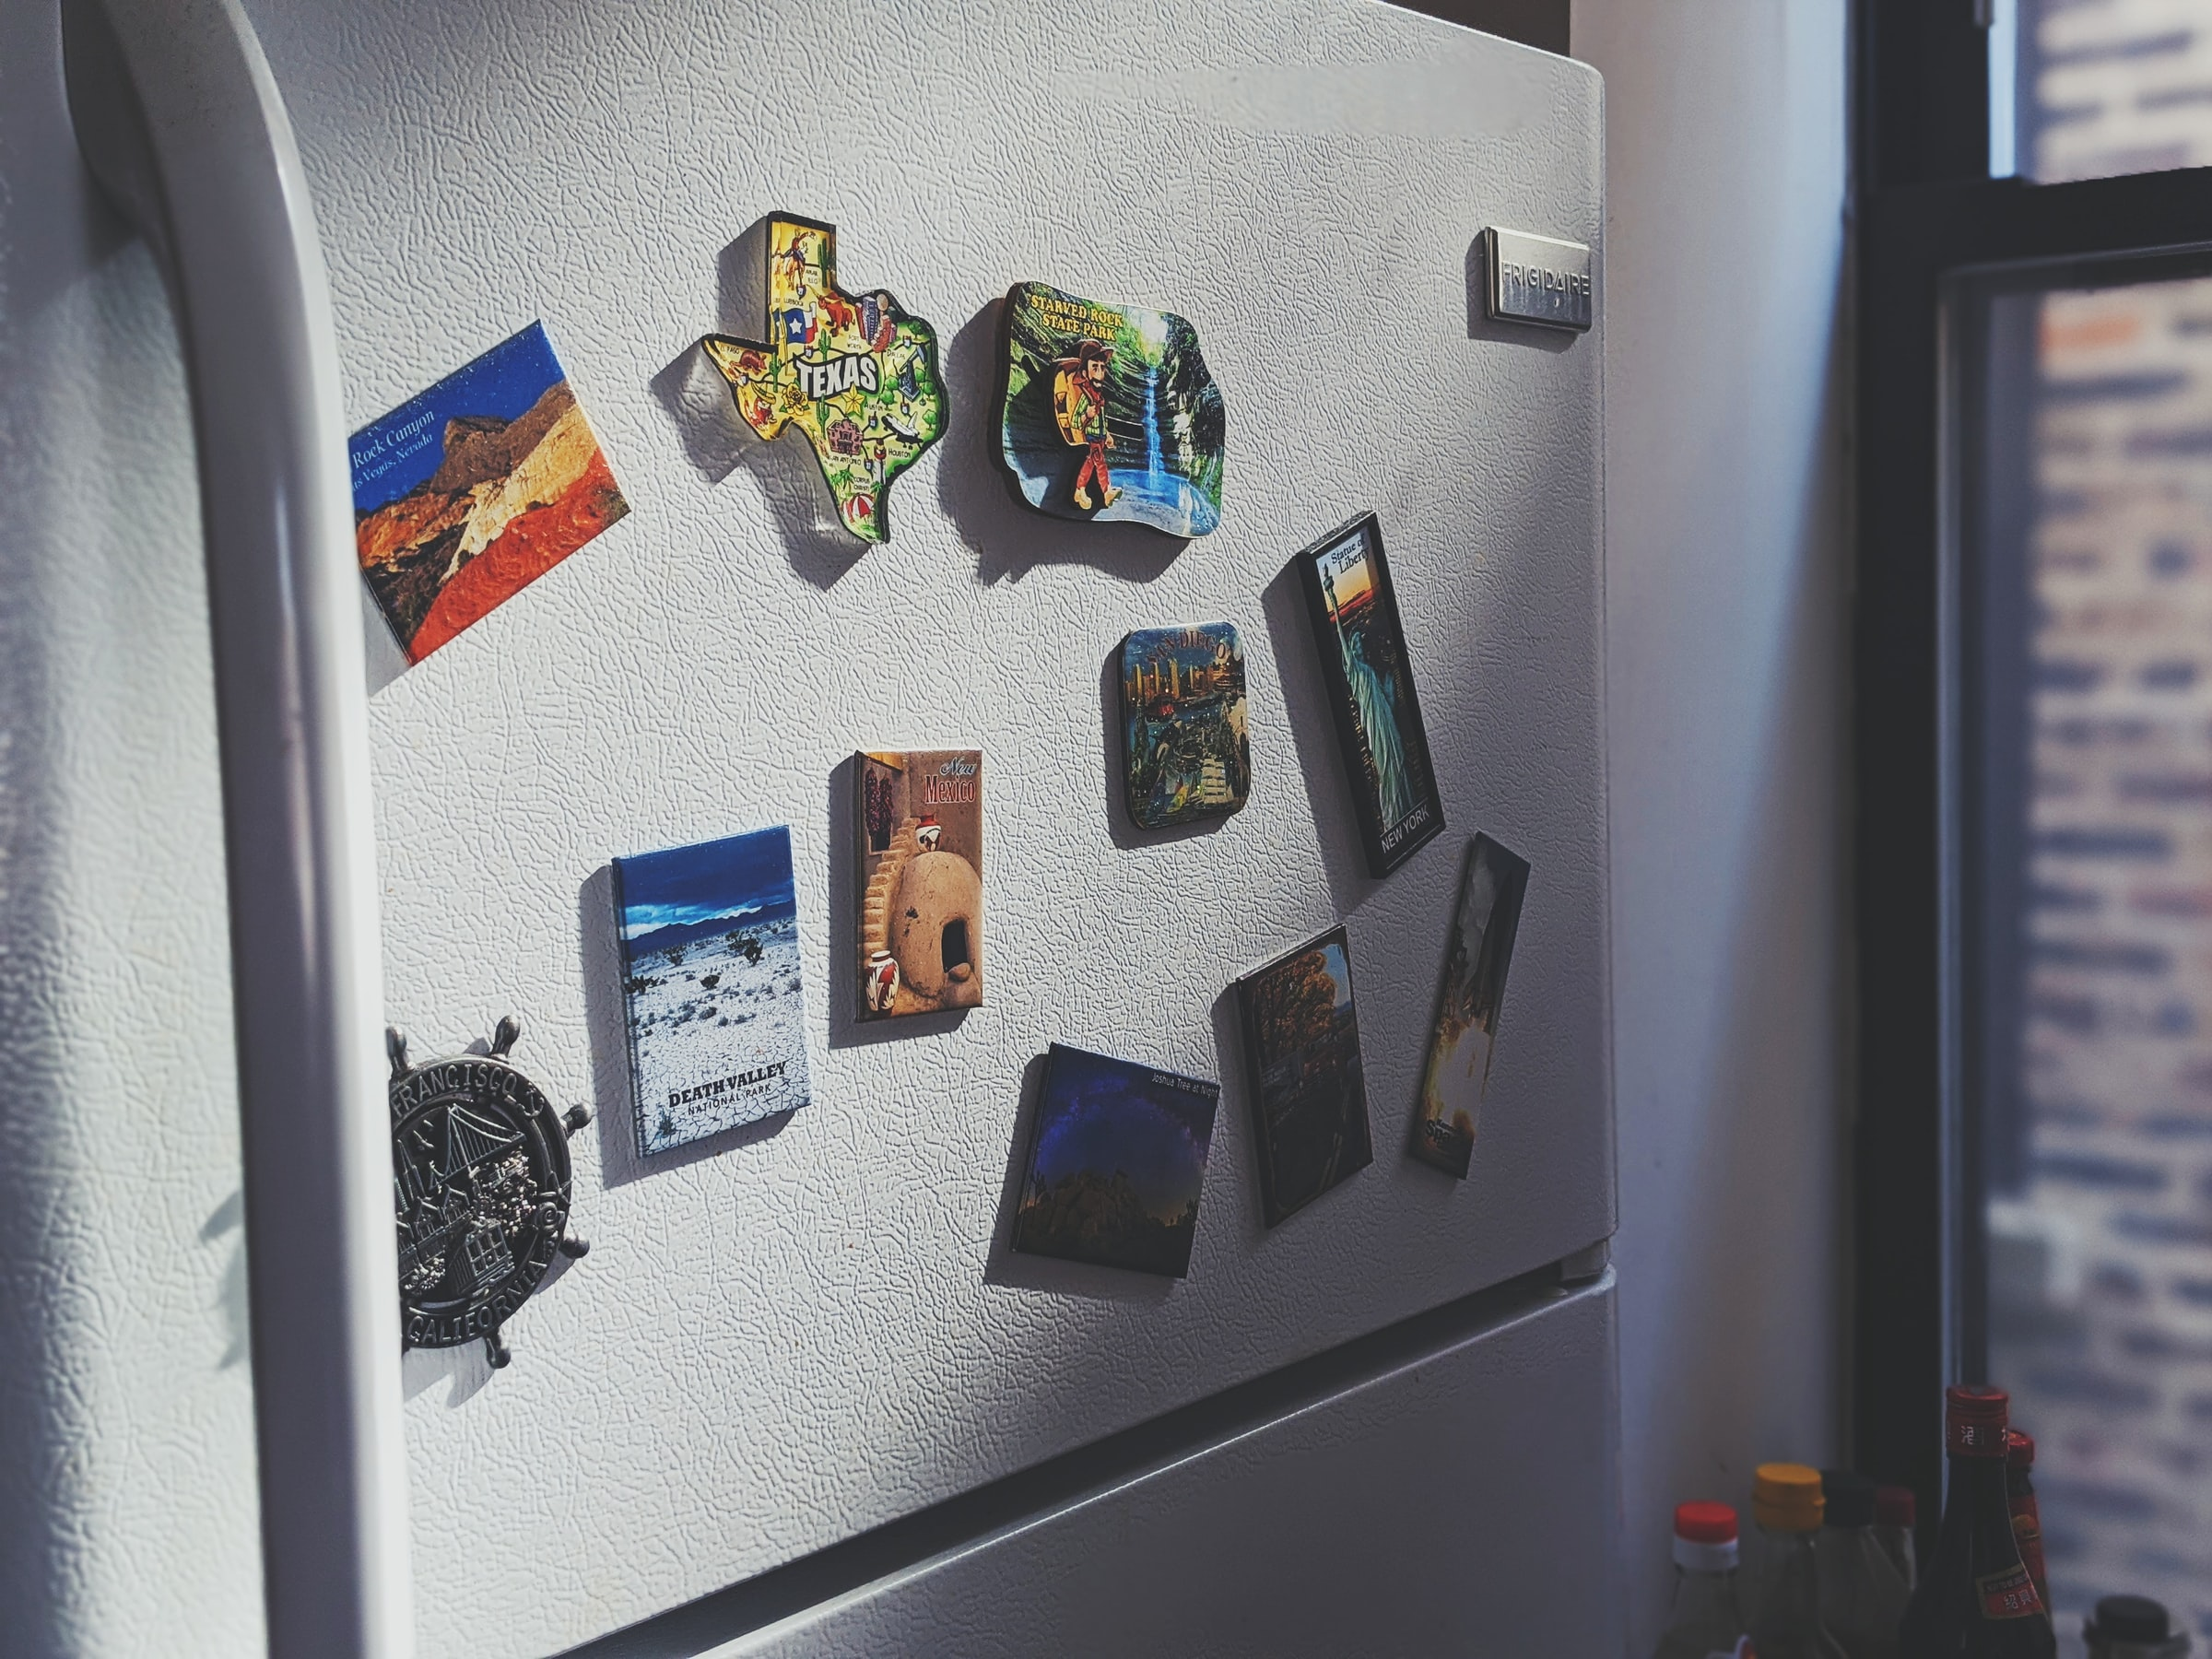 Refrigertor with magnets